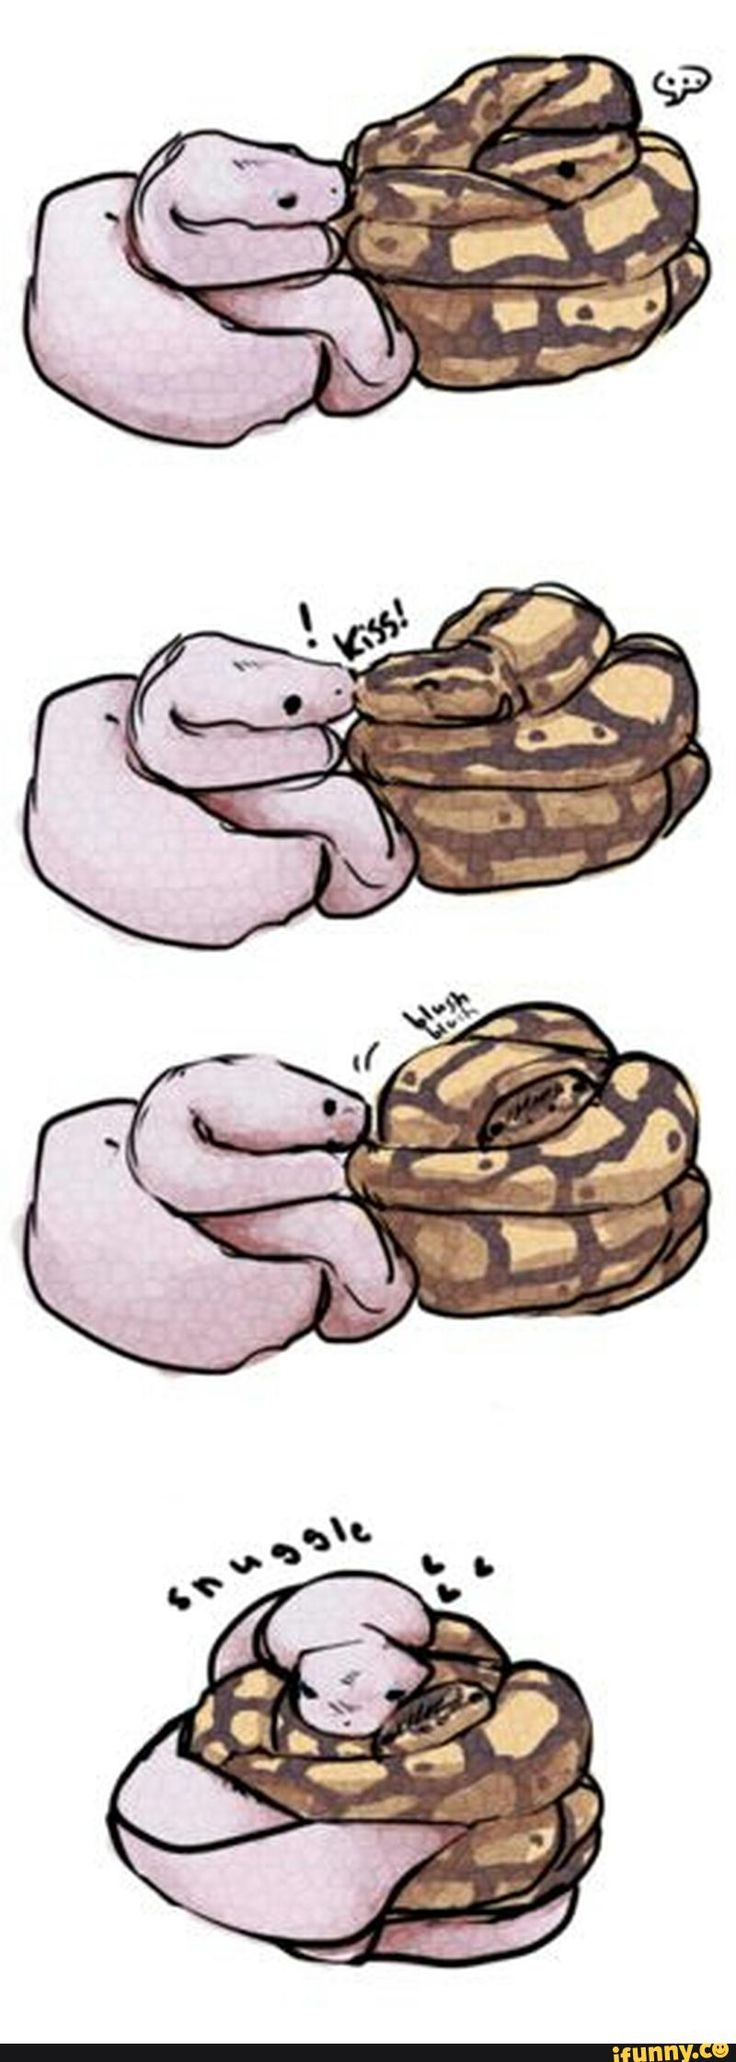 best animals images on pinterest snakes cool things and funny